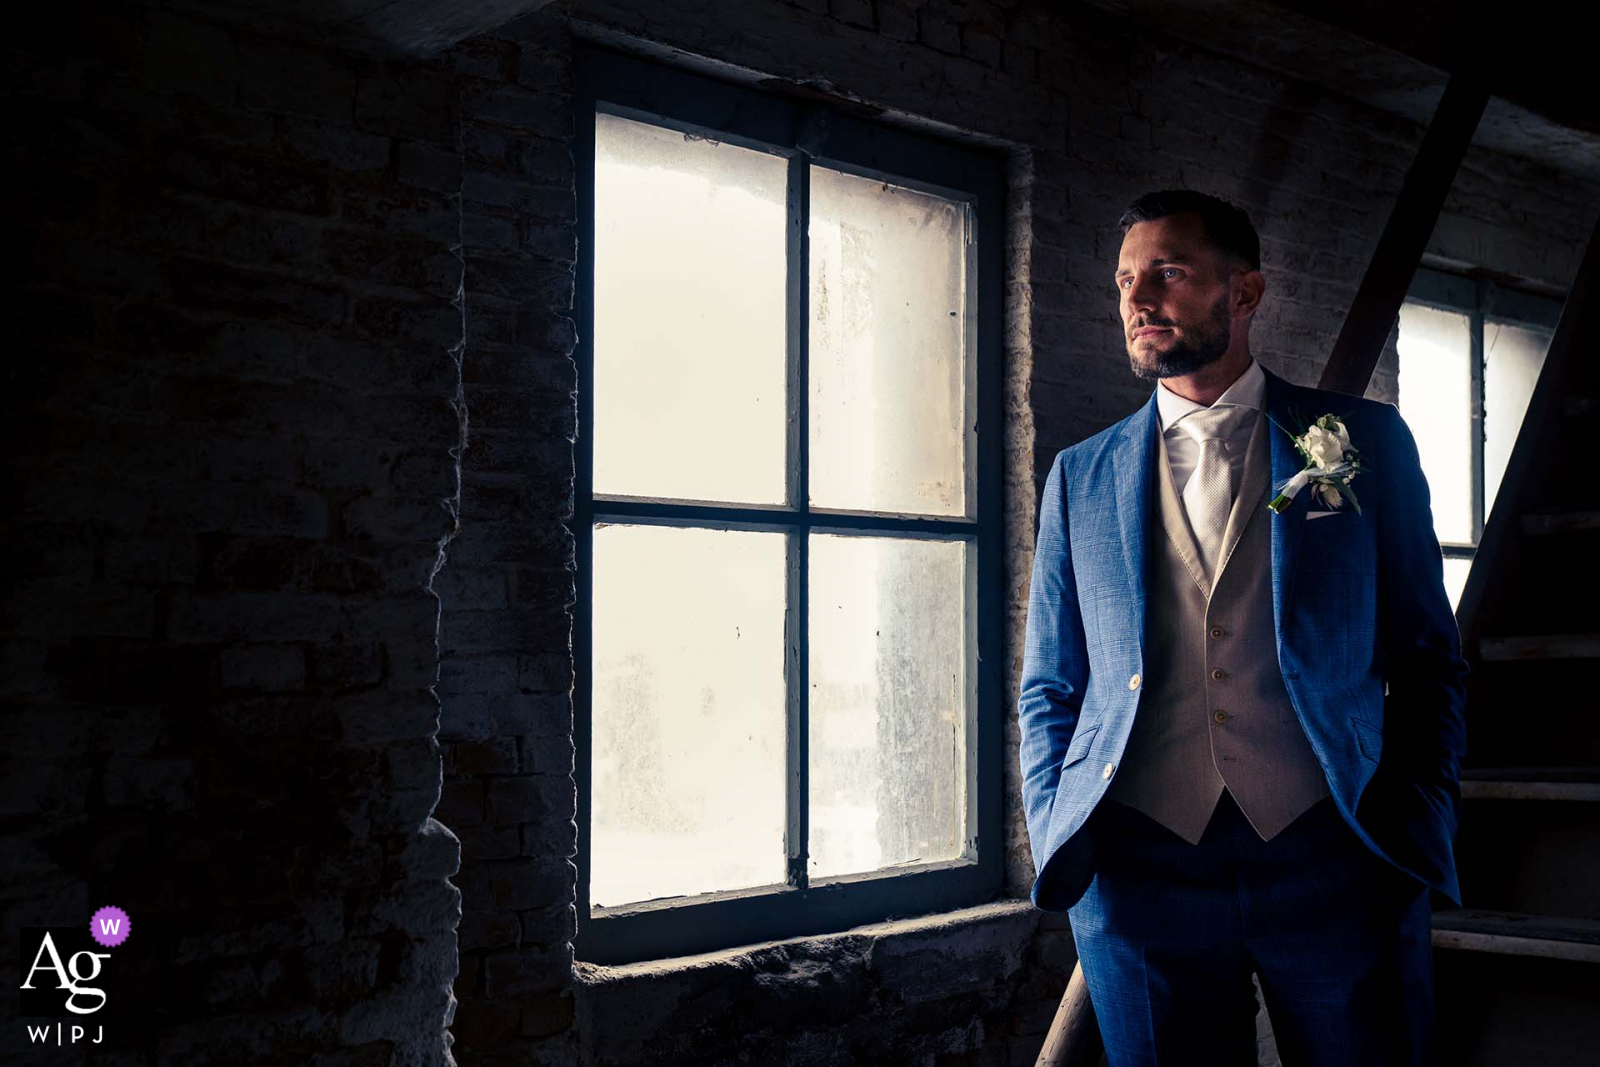 At the Sodafabriek old factory in Schiedam The Netherlands, The groom is standing in a cool pose on the stairs for an artistic wedding photo